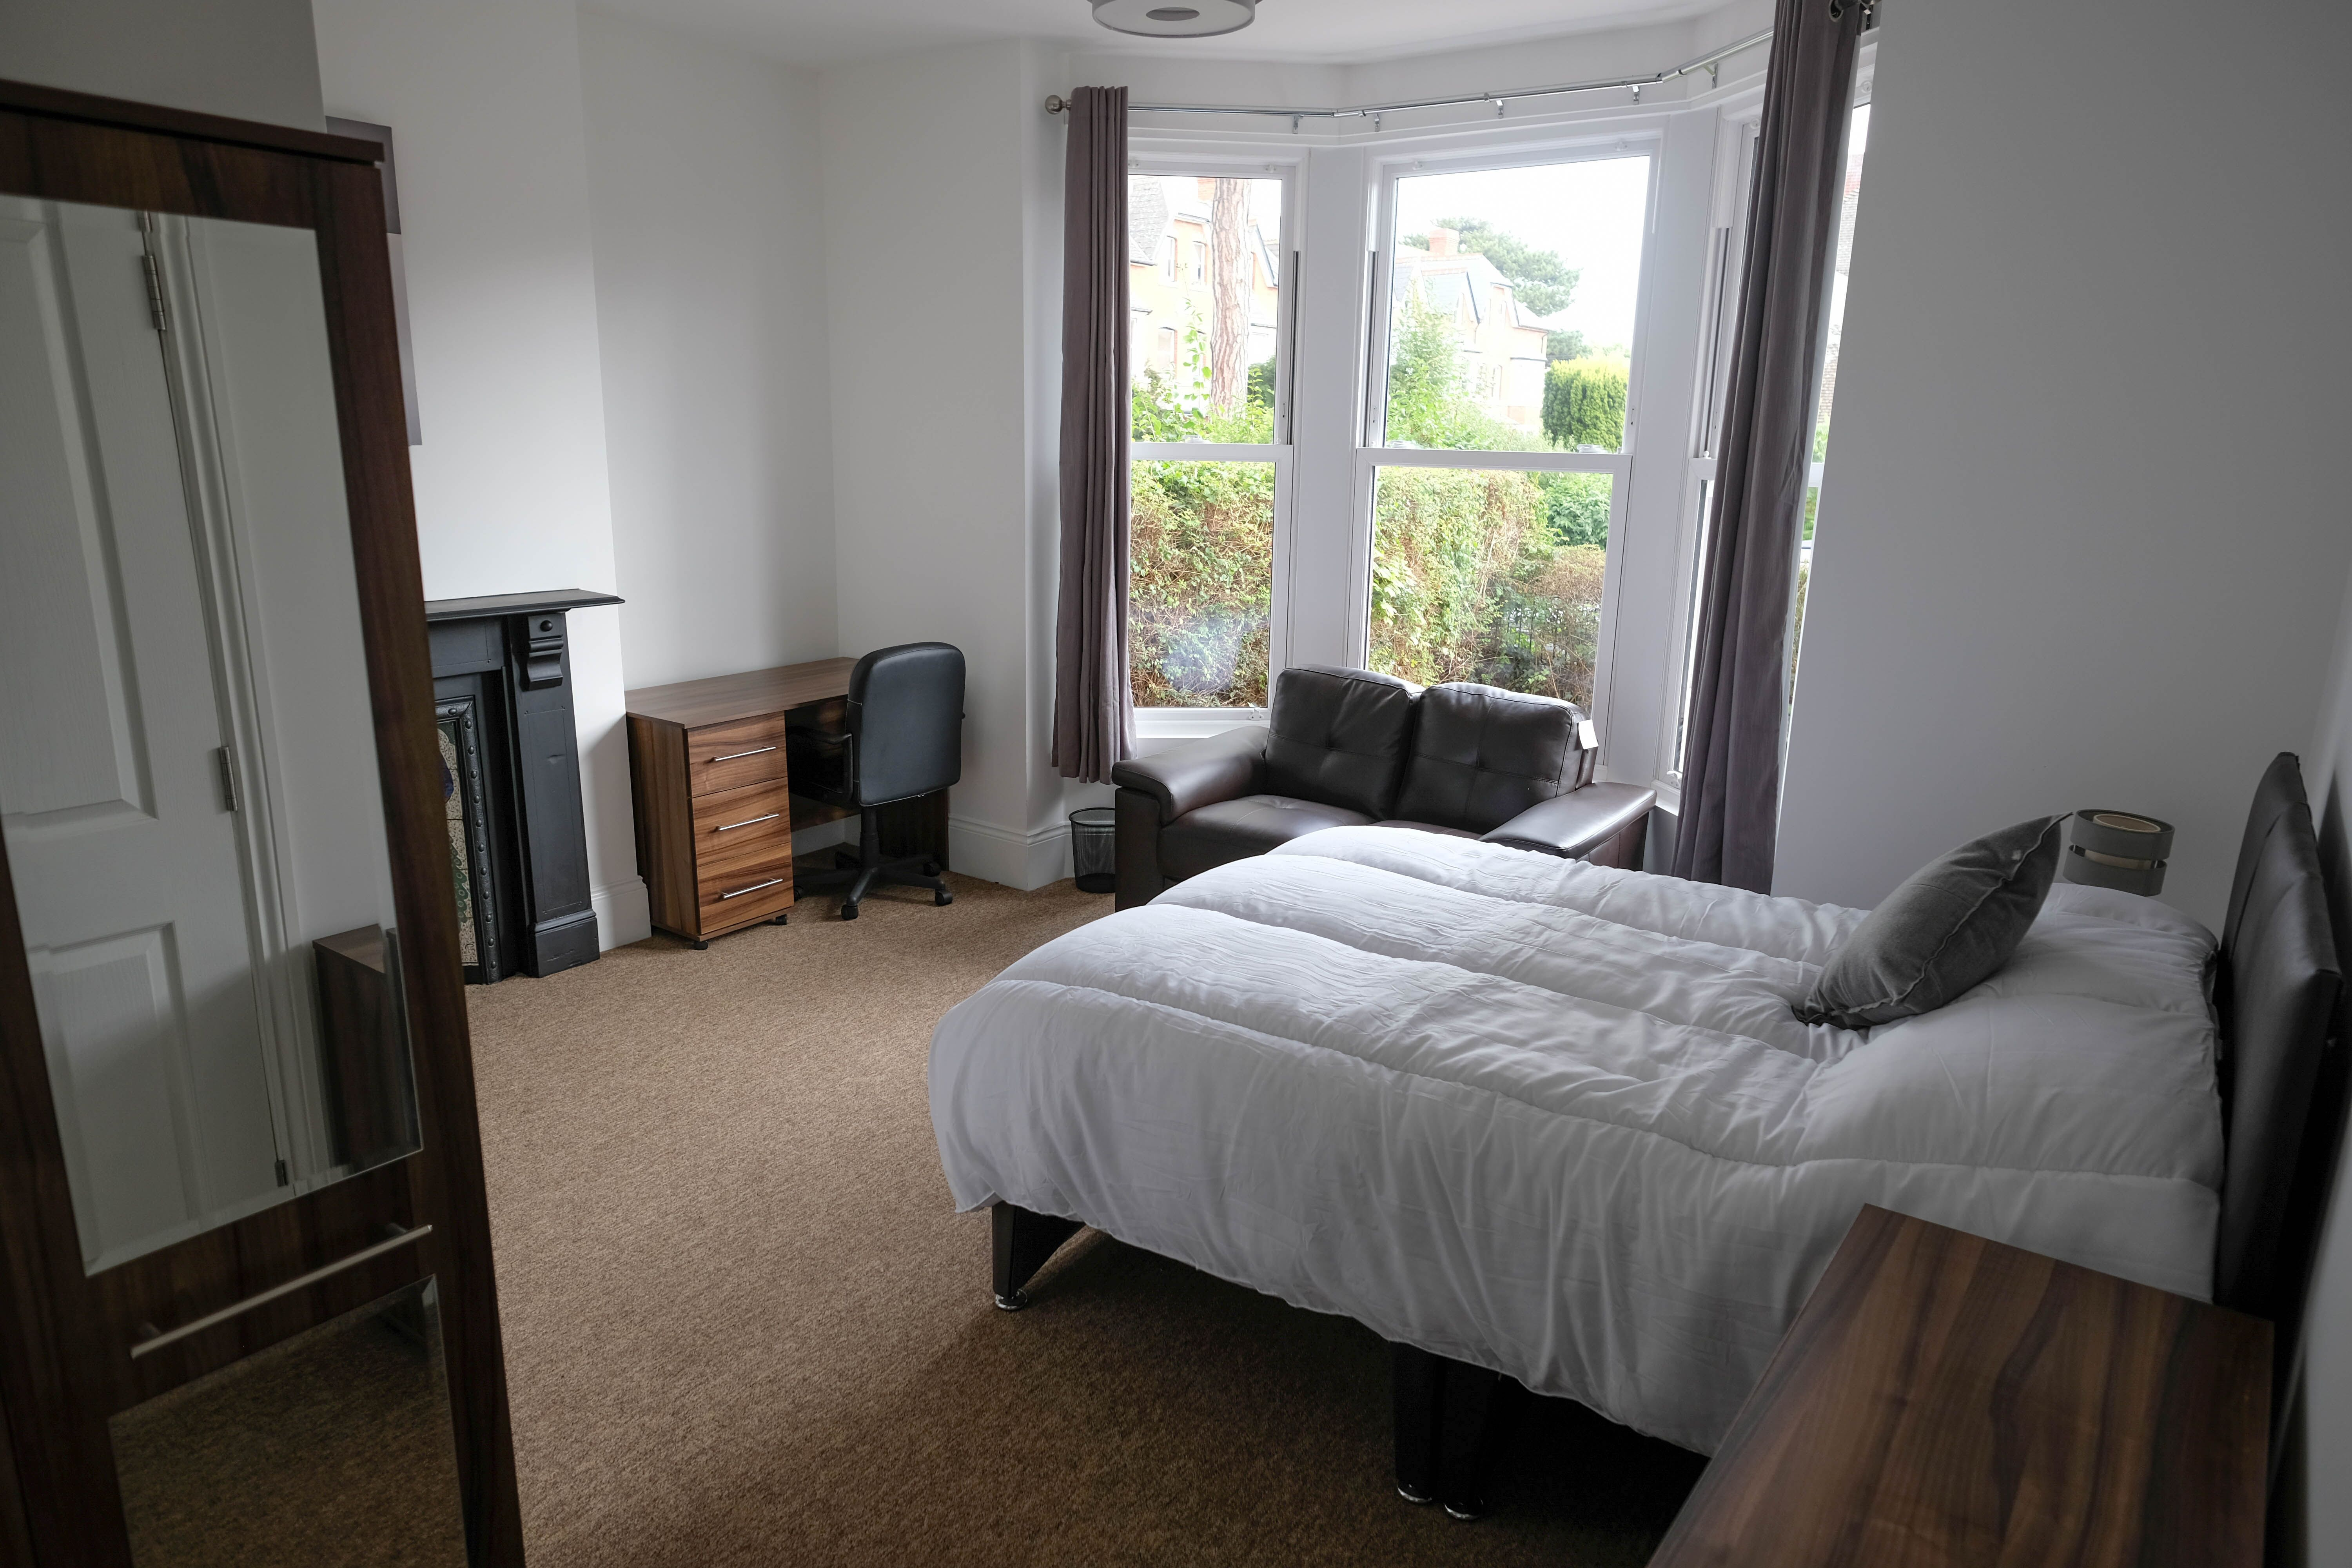 Tenanted 5 Bed Student HMO with Potential Add Value of £30/40K For Sale